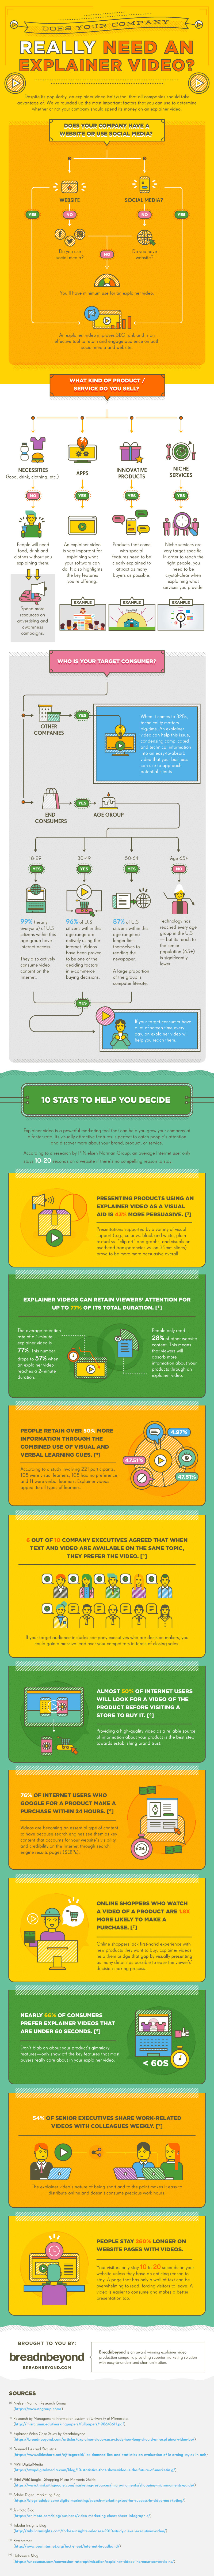 [INFOGRAPHIC] Does Your Company Really Need An Explainer Video?